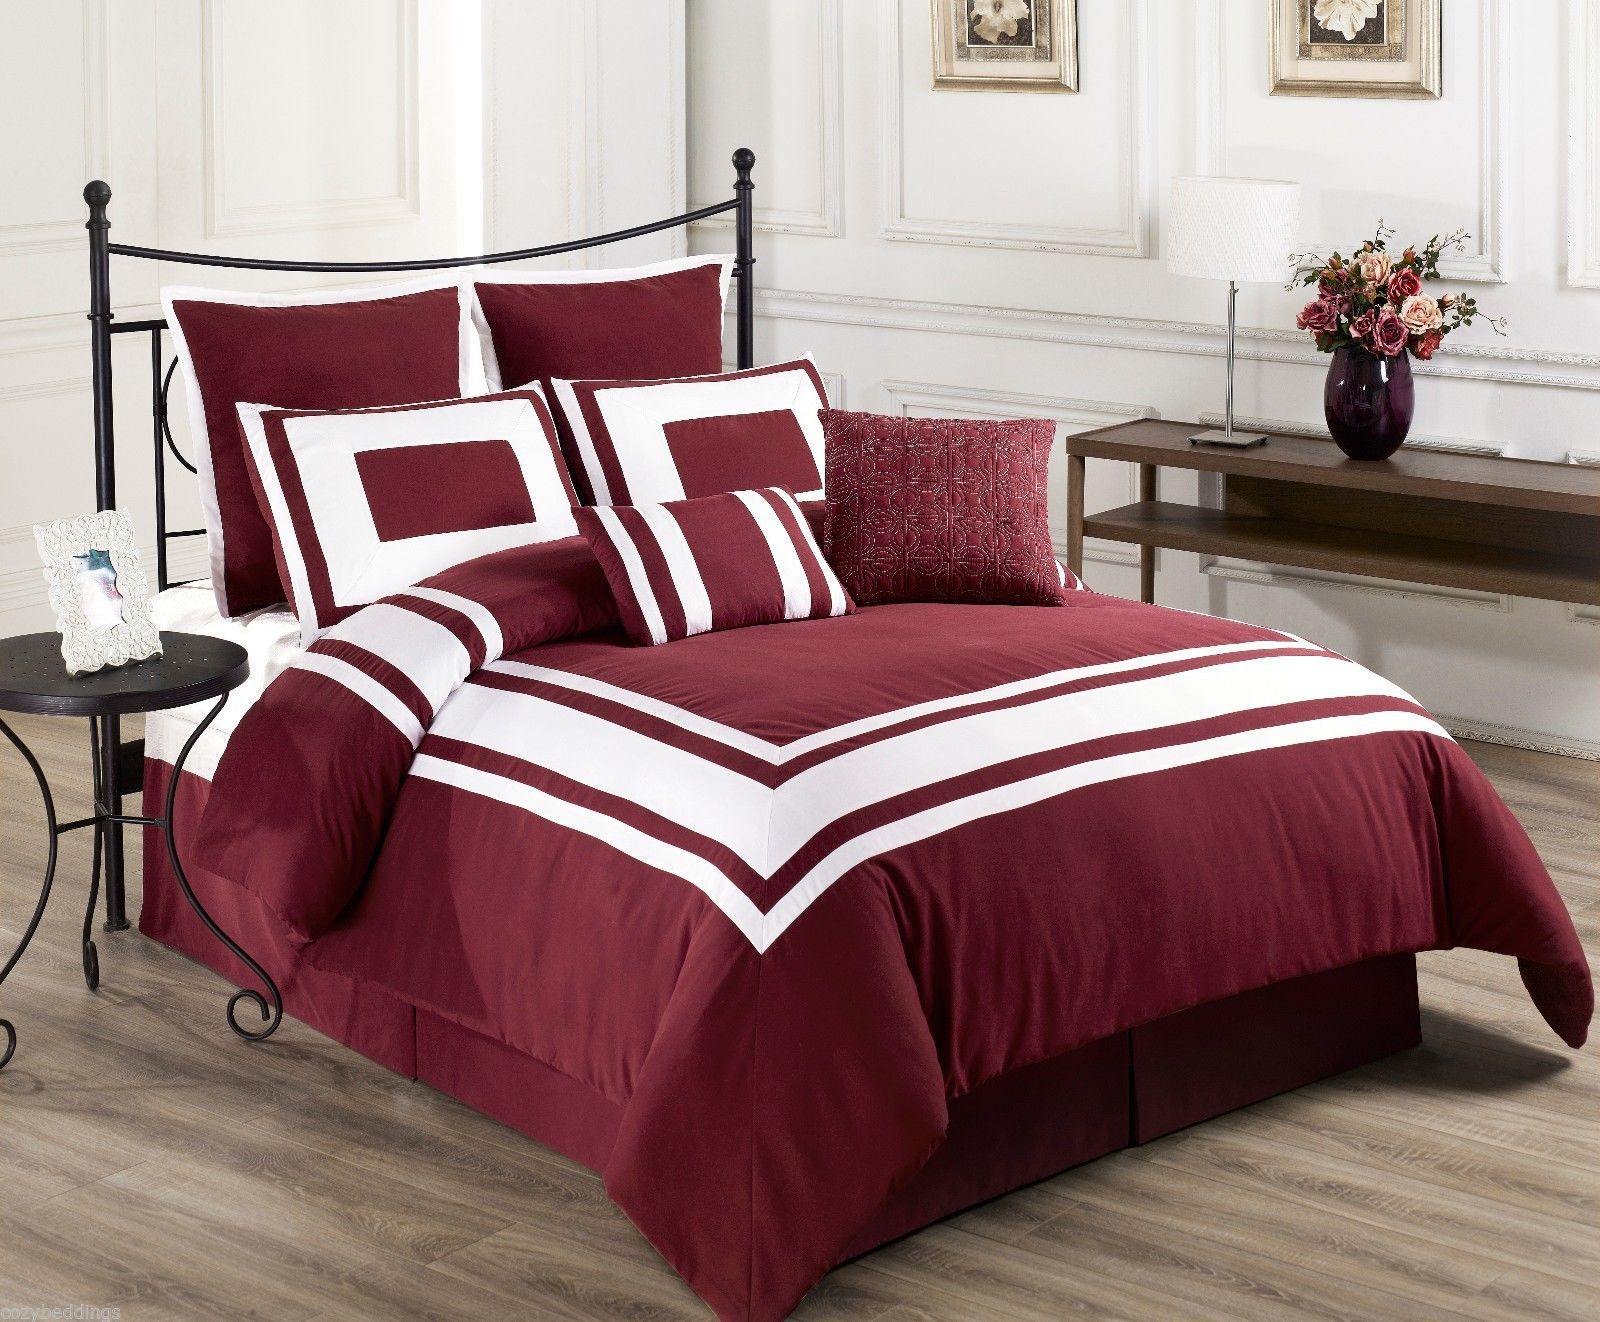 cal king size 8 pc comforter set with white stripe bedding